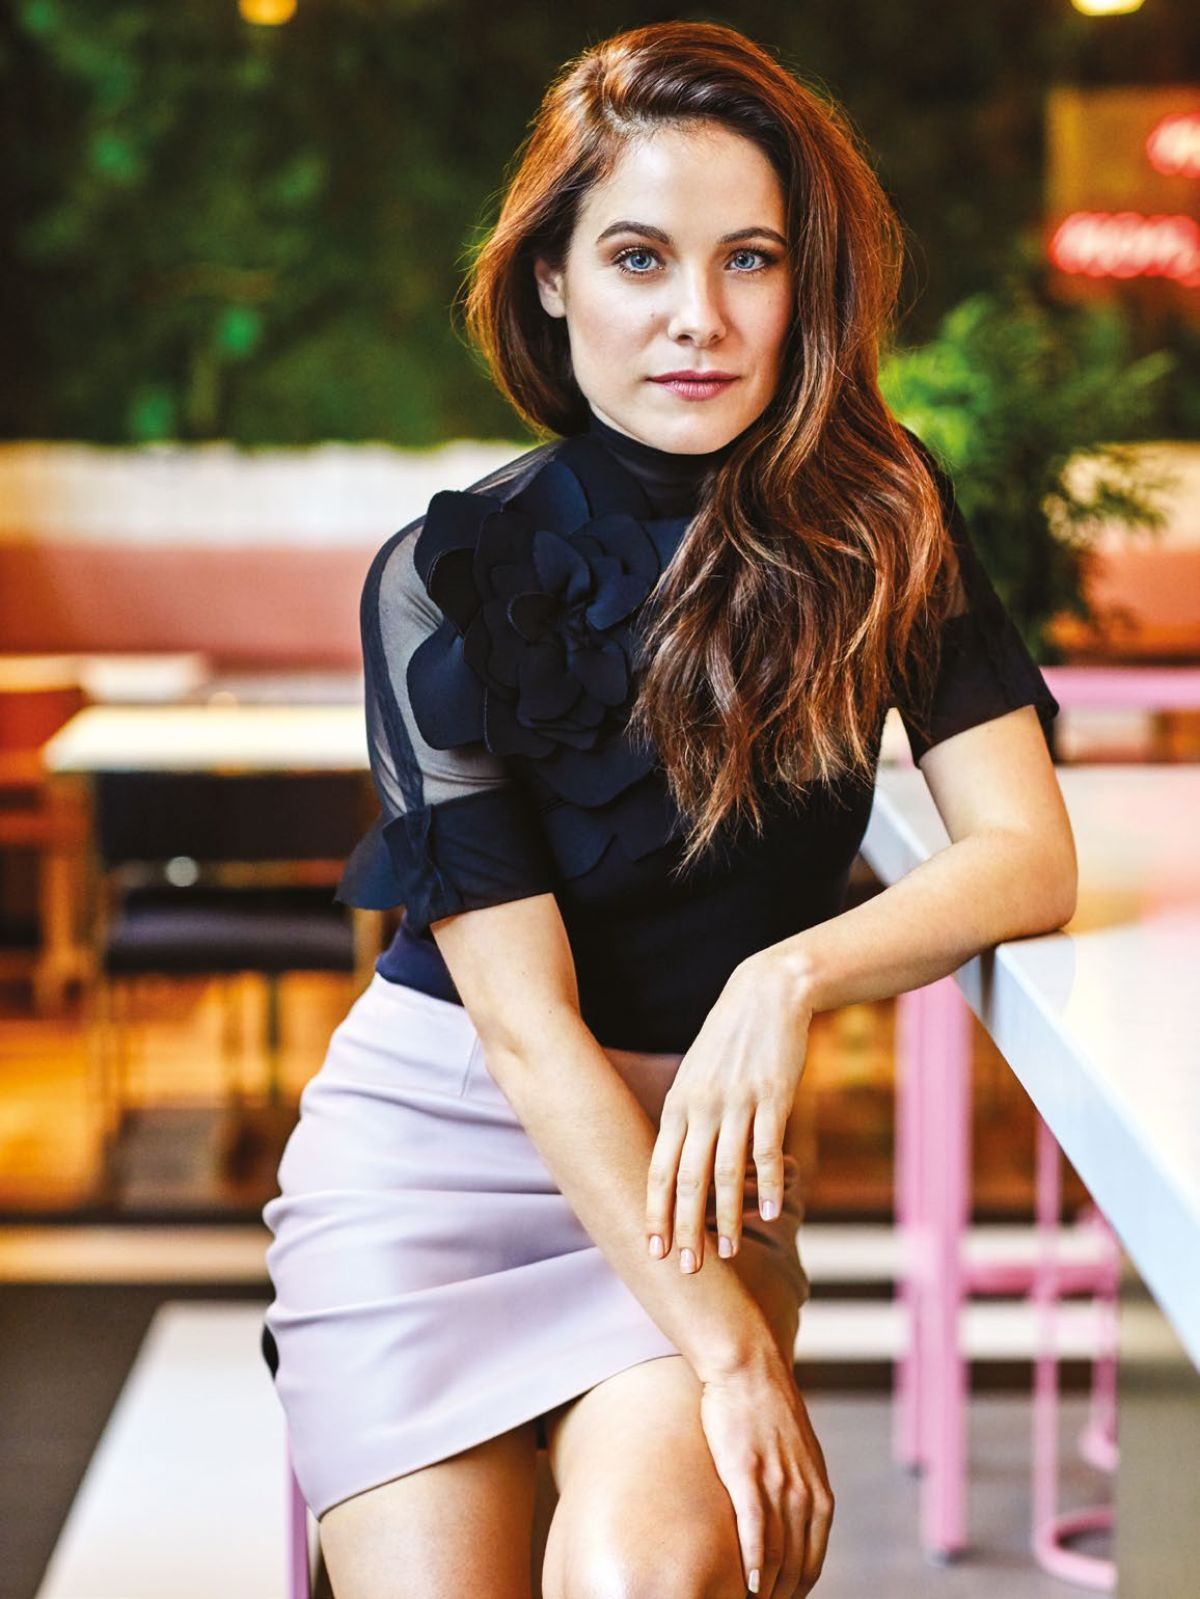 CAROLINE DHAVERNAS in Chatelaine Magazine, March 2017